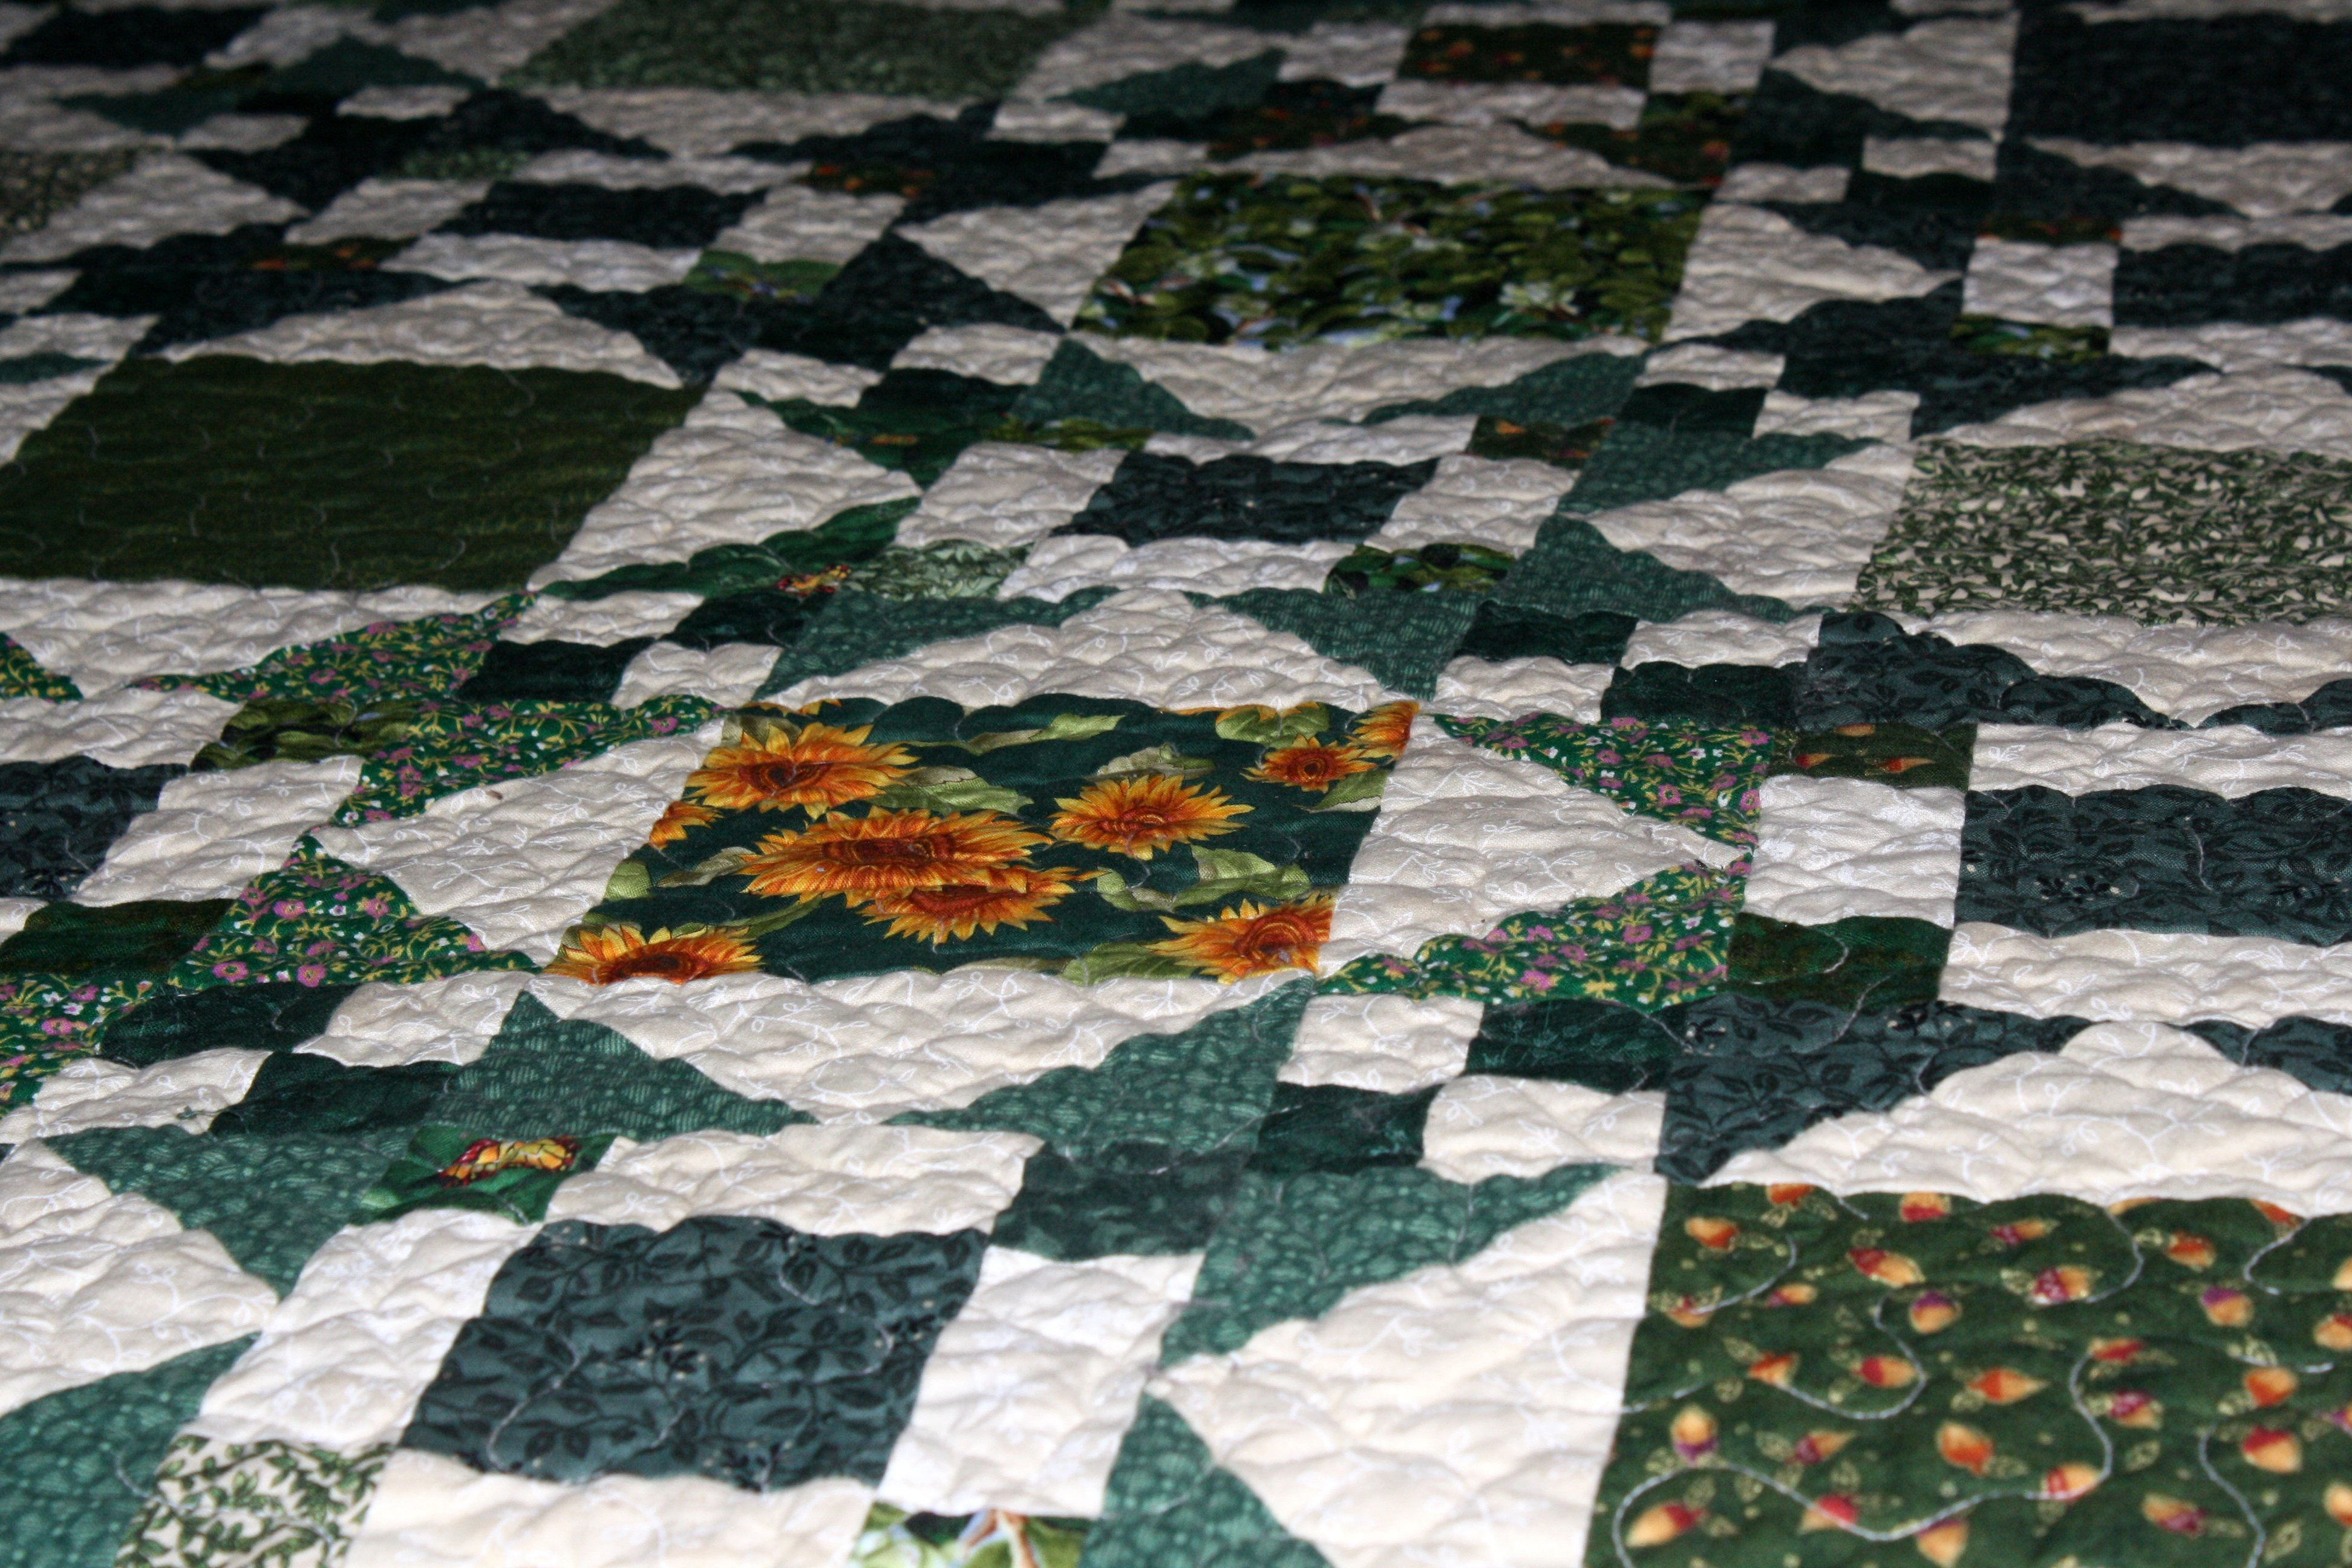 Quilt Block Patterns In Public Domain : Green and White Quilt Picture Free Photograph Photos Public Domain